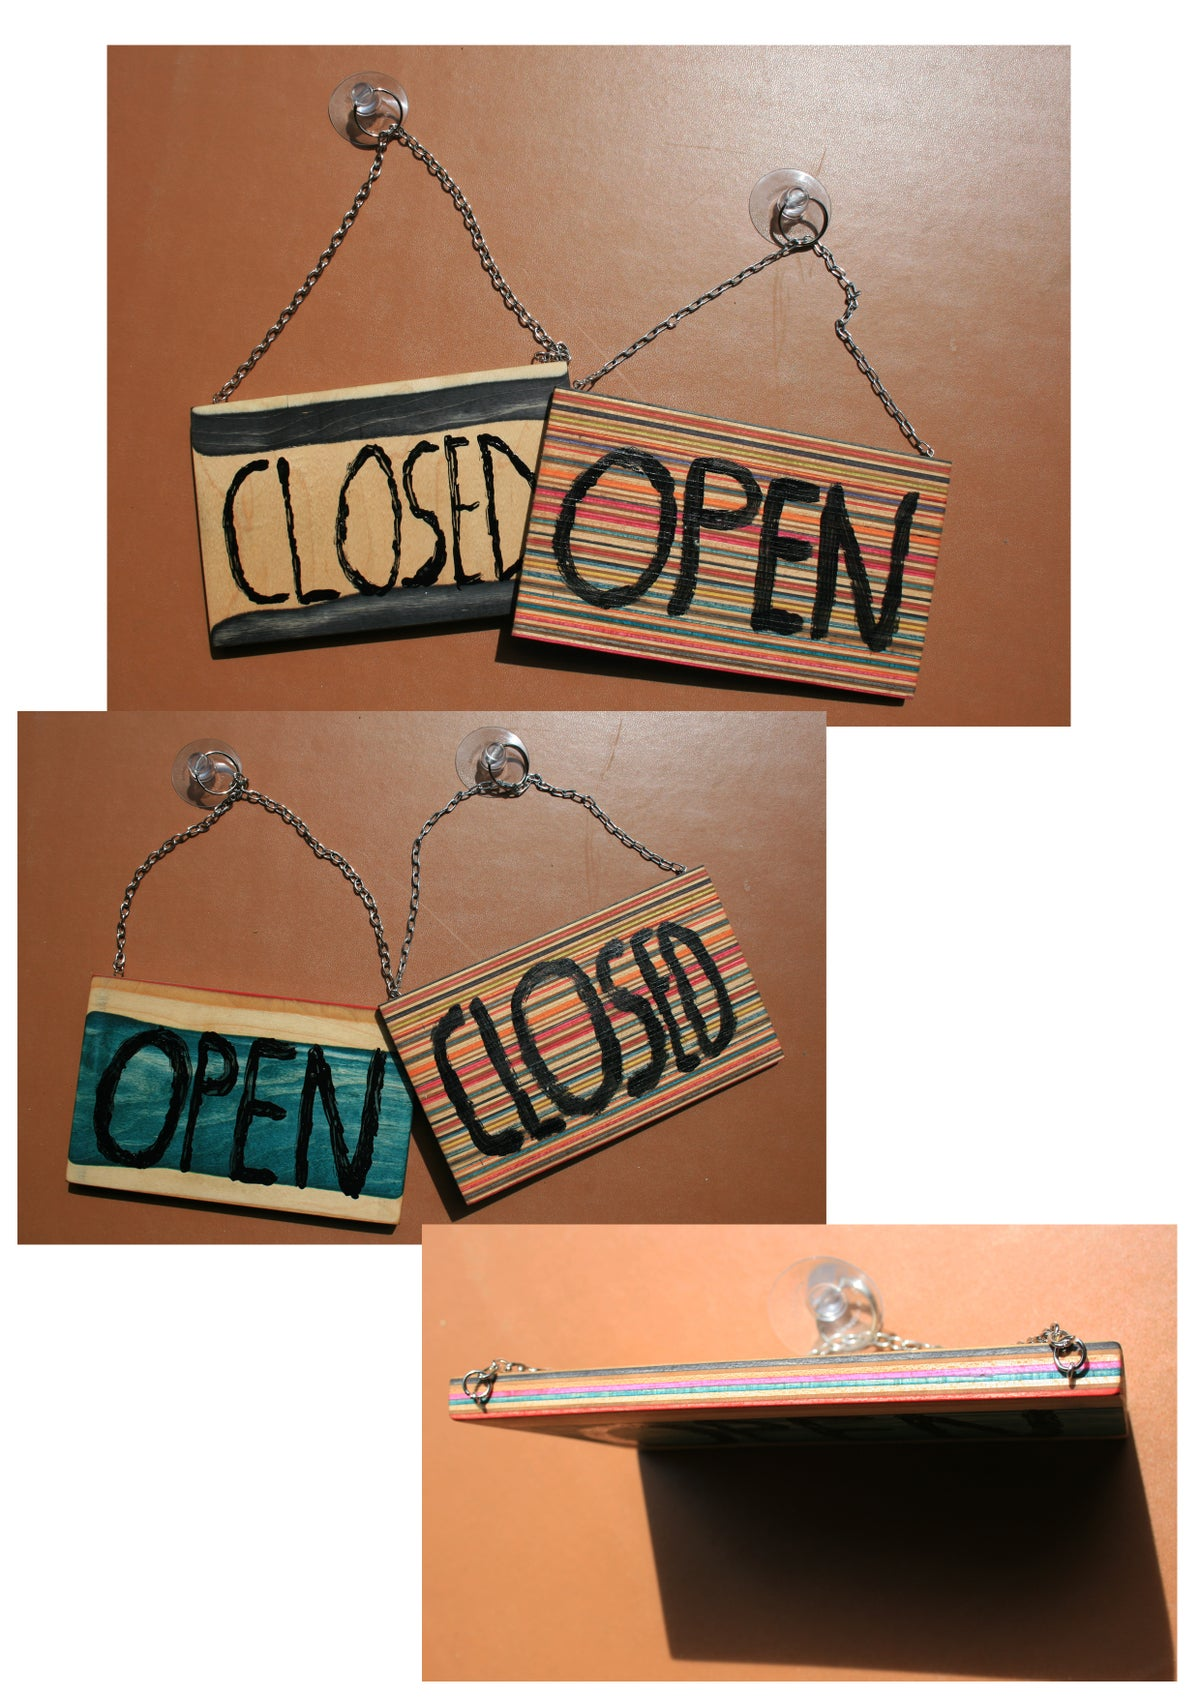 Open/Closed Schilder